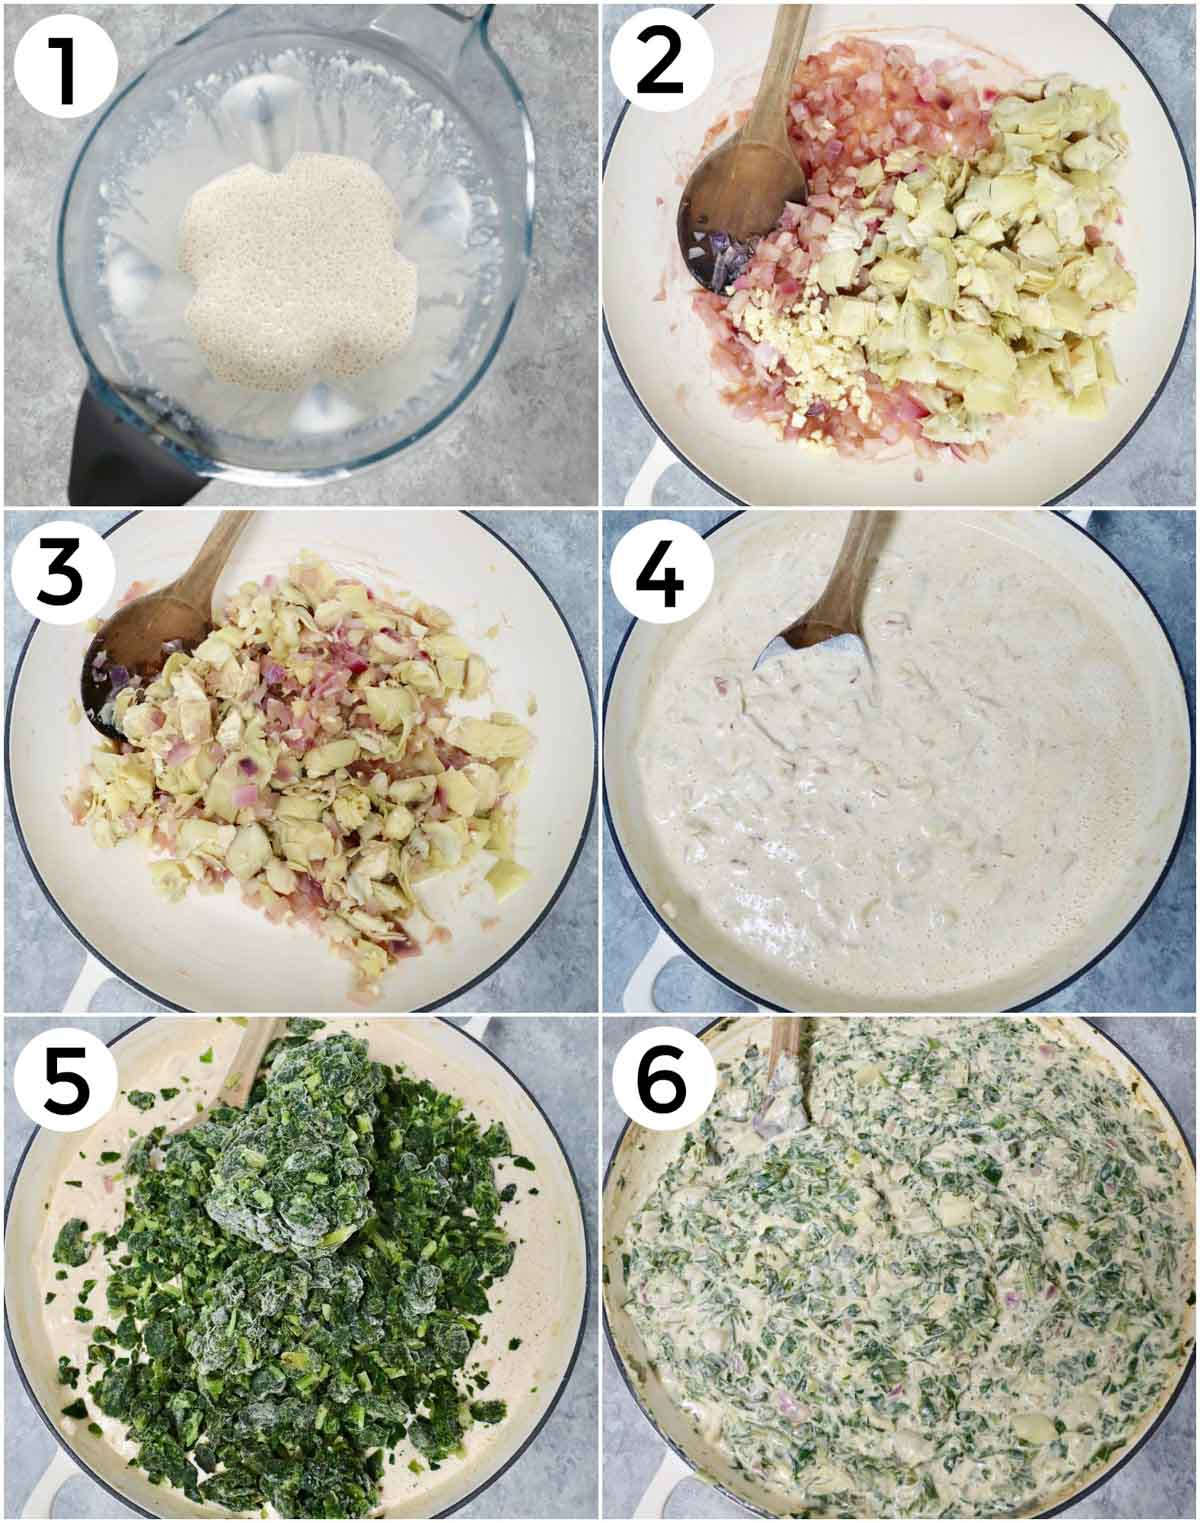 A photo collage showing how to make vegan spinach artichoke dip in 6 easy steps.